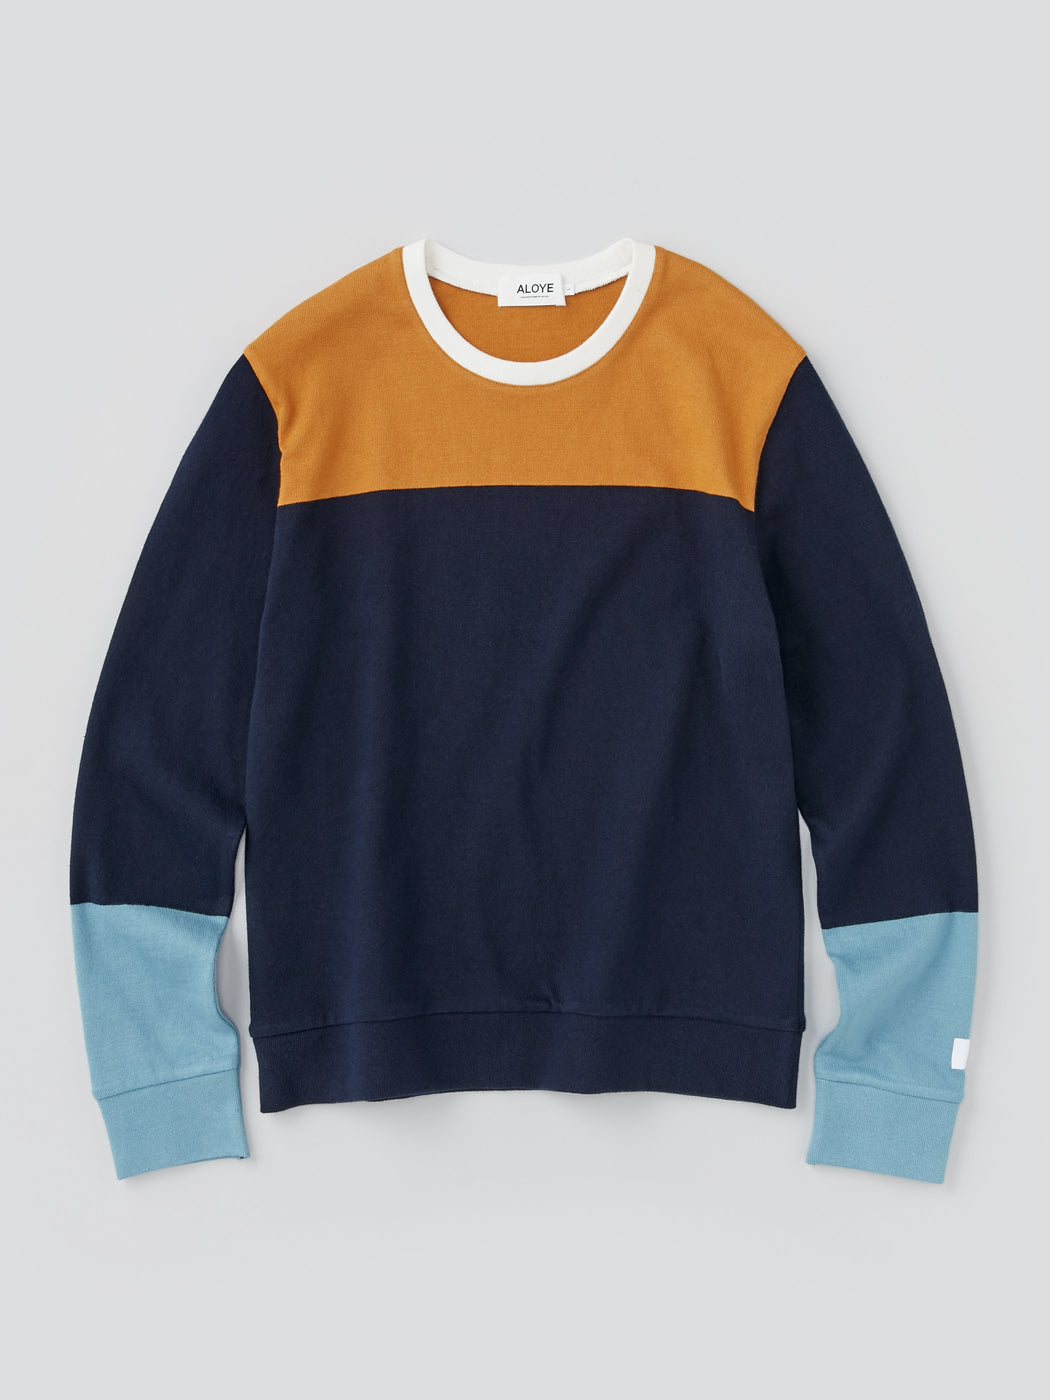 ALOYE G.F.G.S. Men's Cotton Knitted Sweater Navy Color Block